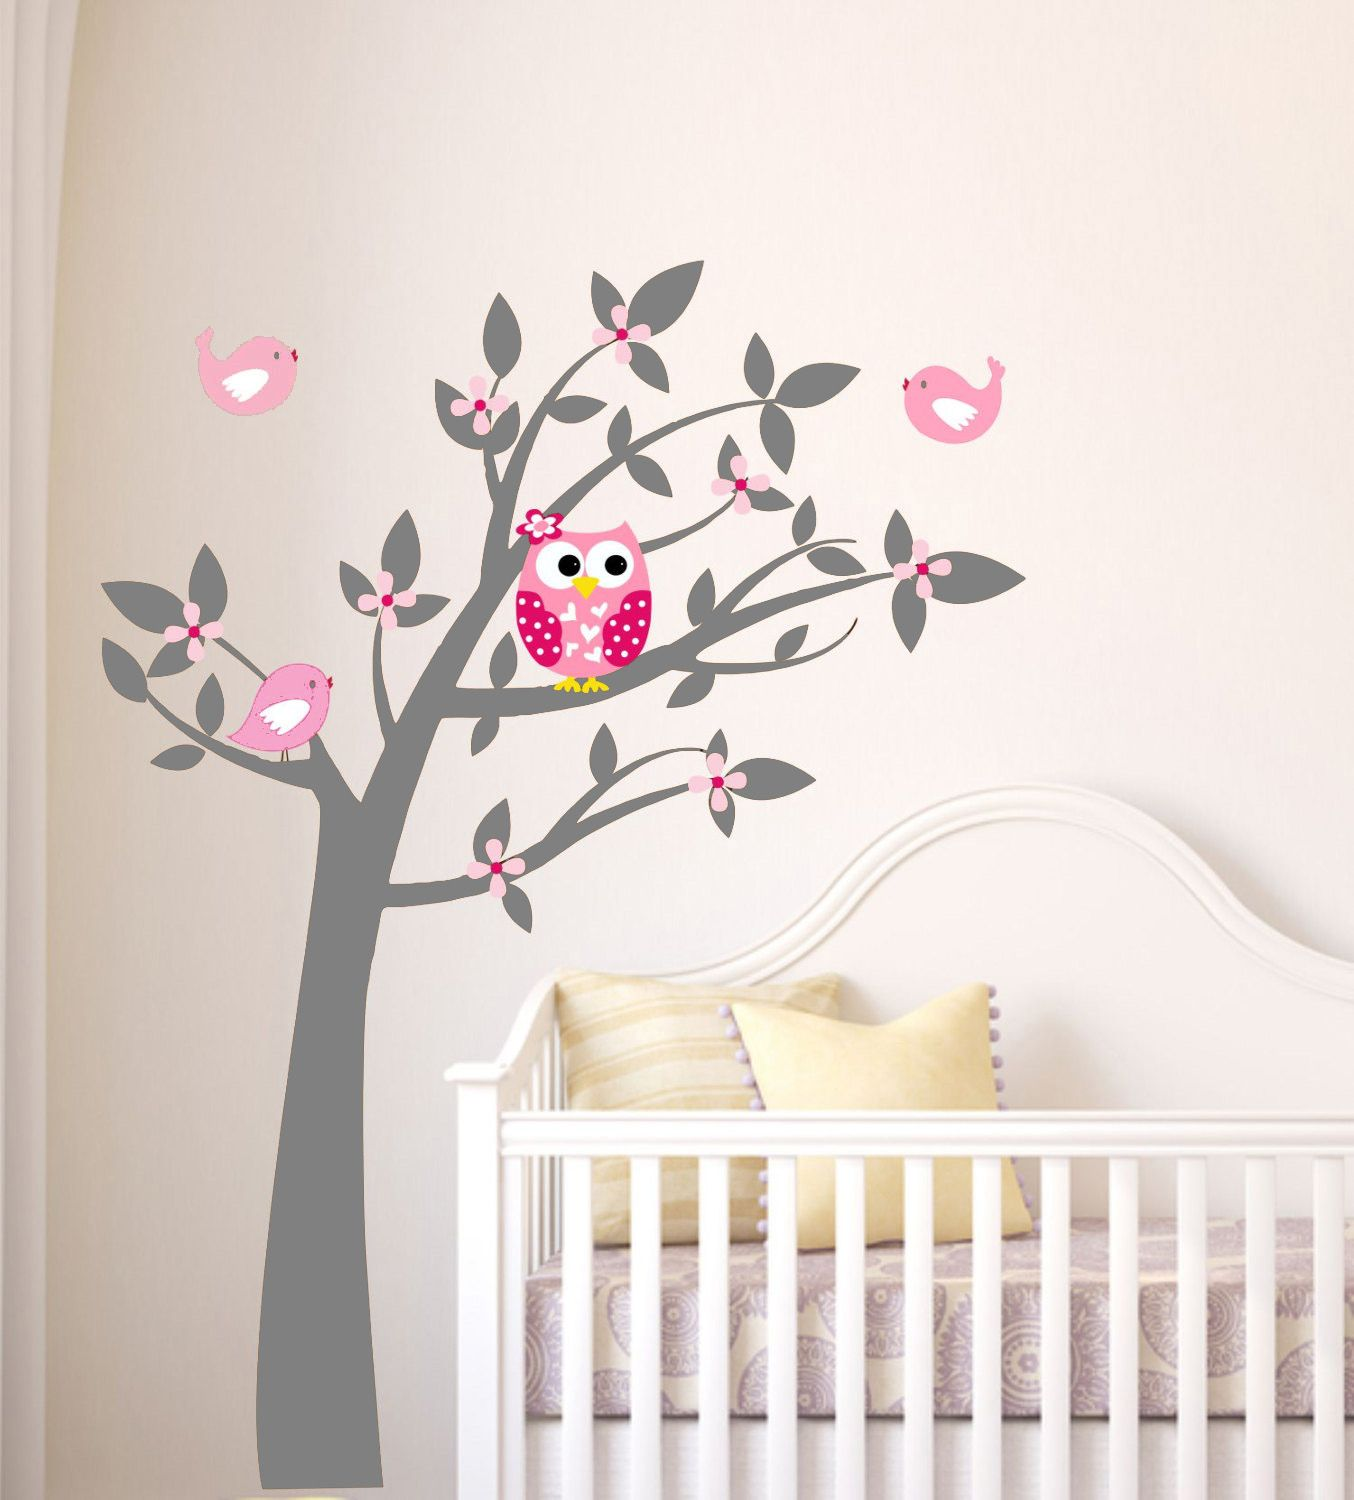 Home / Uil / Uil Boom / Exclusive Muursticker Uil in Boom (grijs roze)